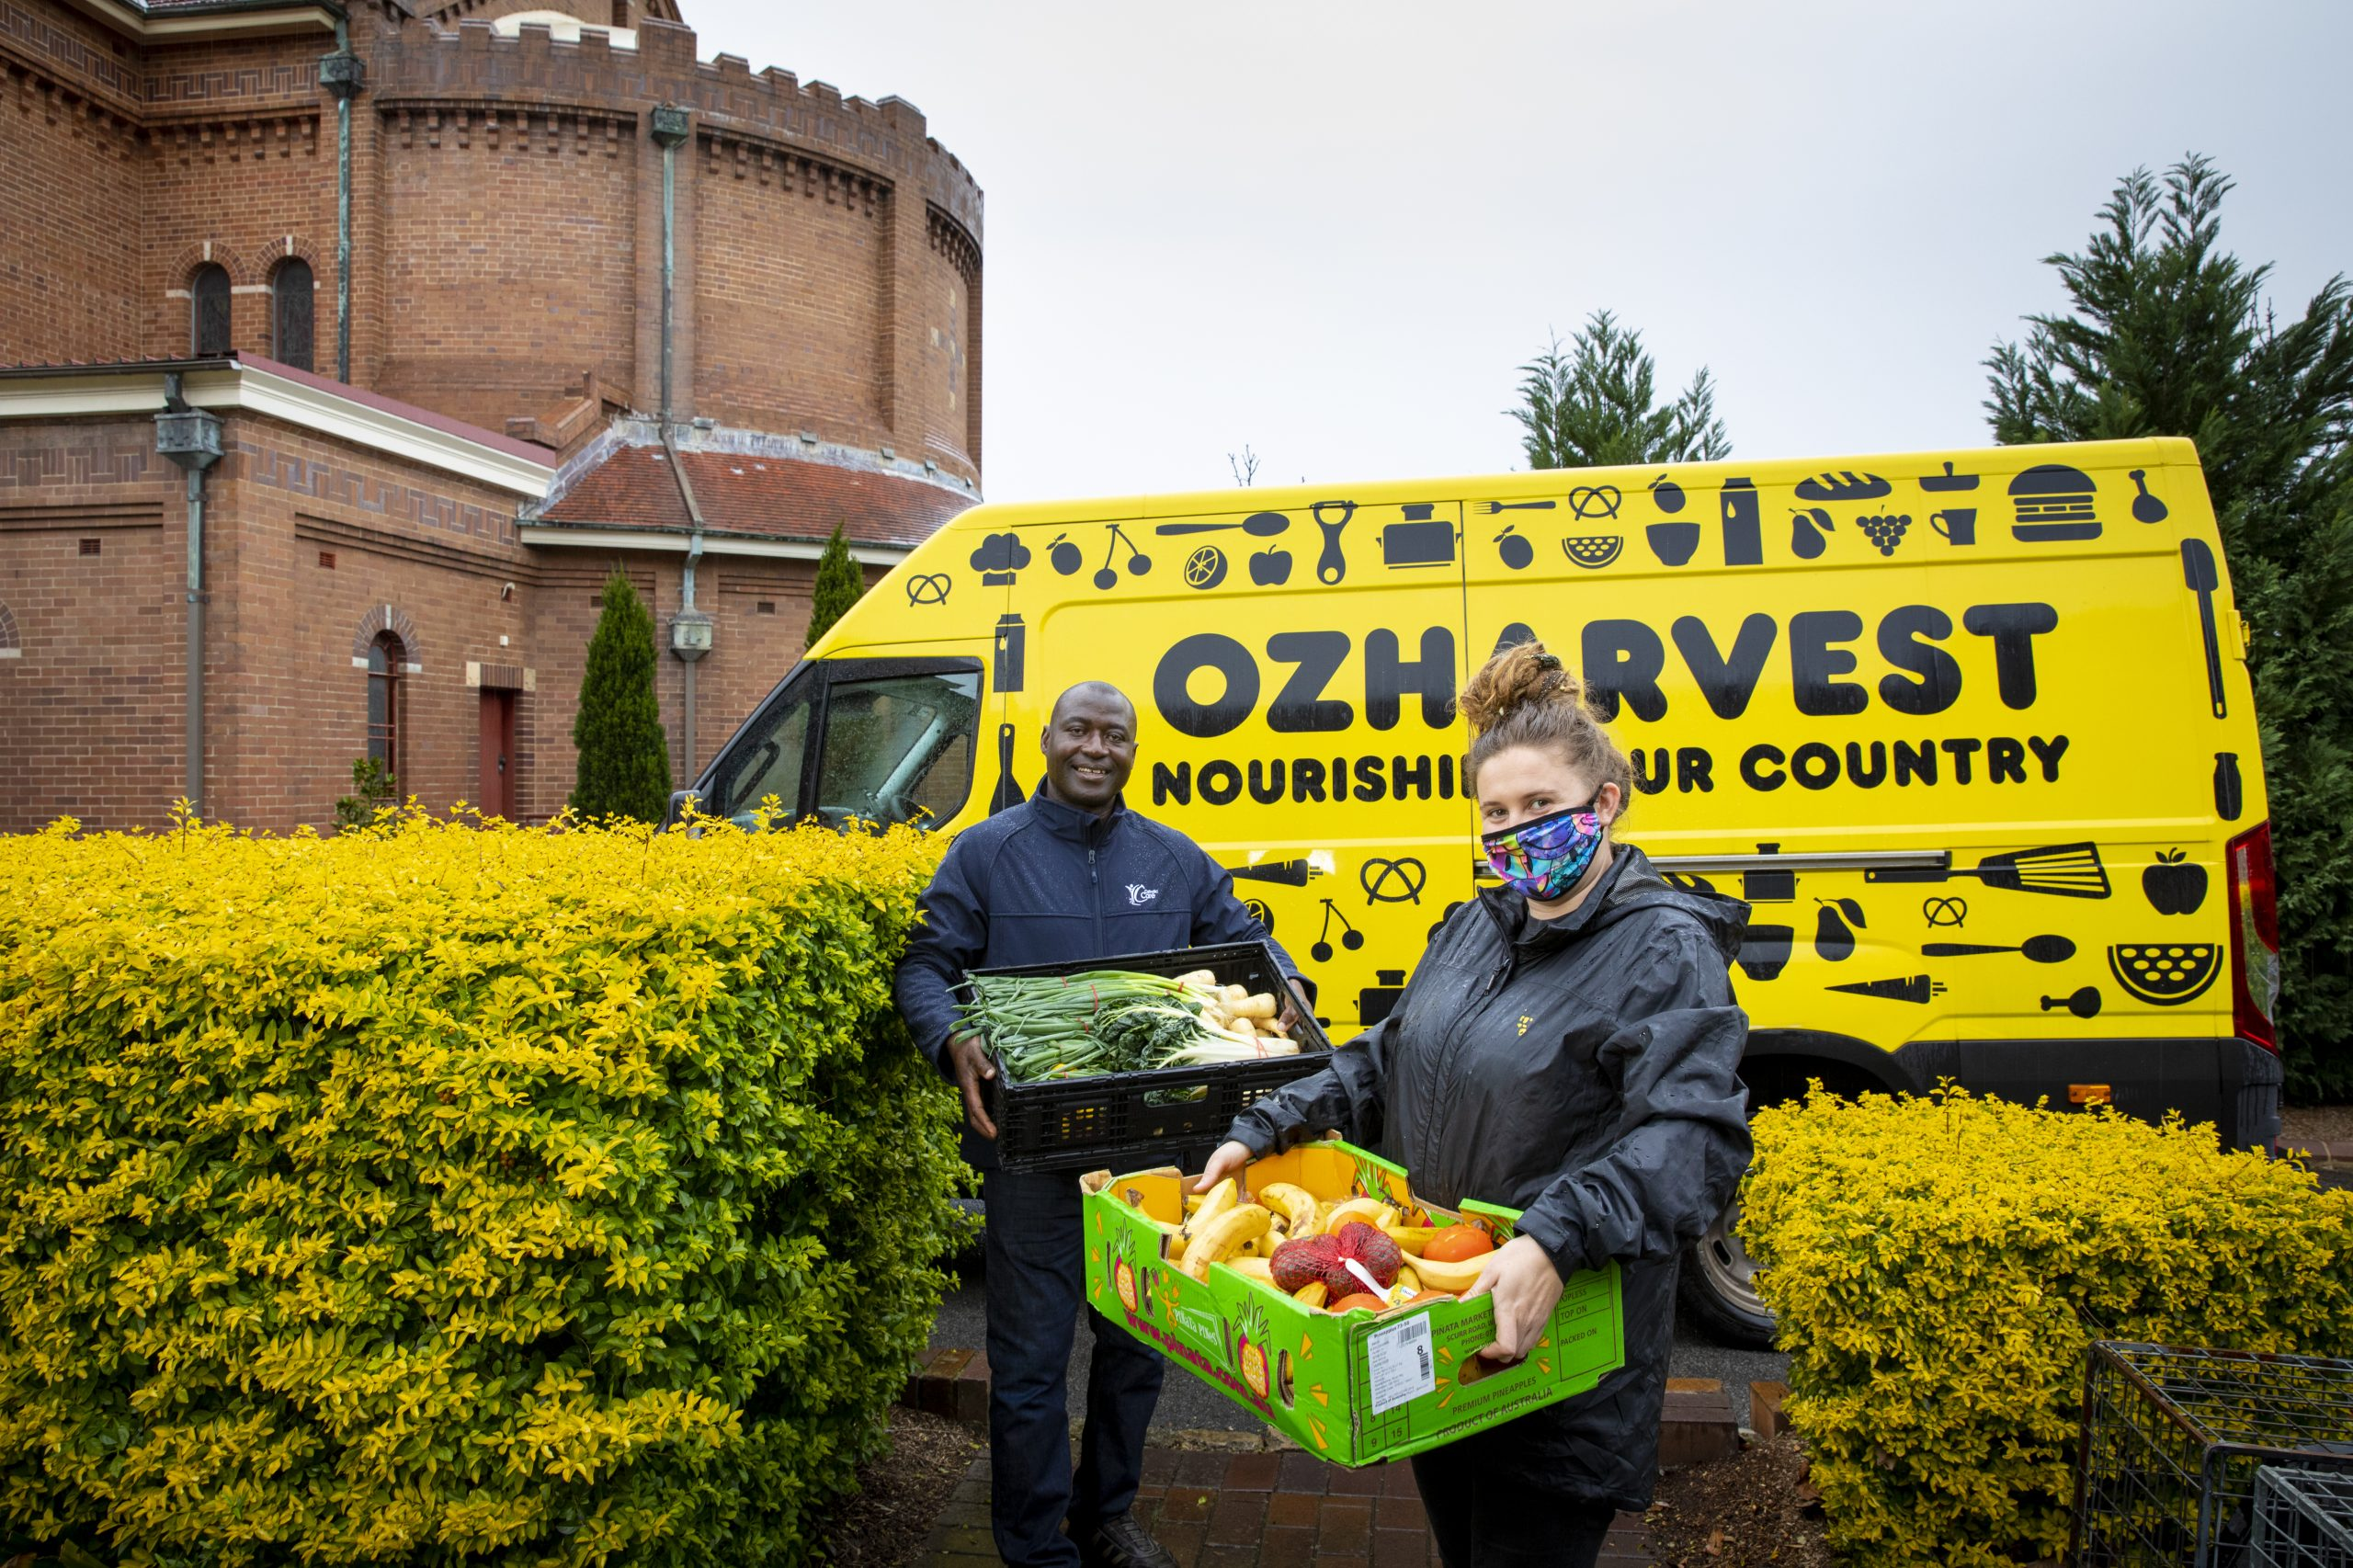 Ozharvest-newcastle-delivers-to-charity-dara-scaled